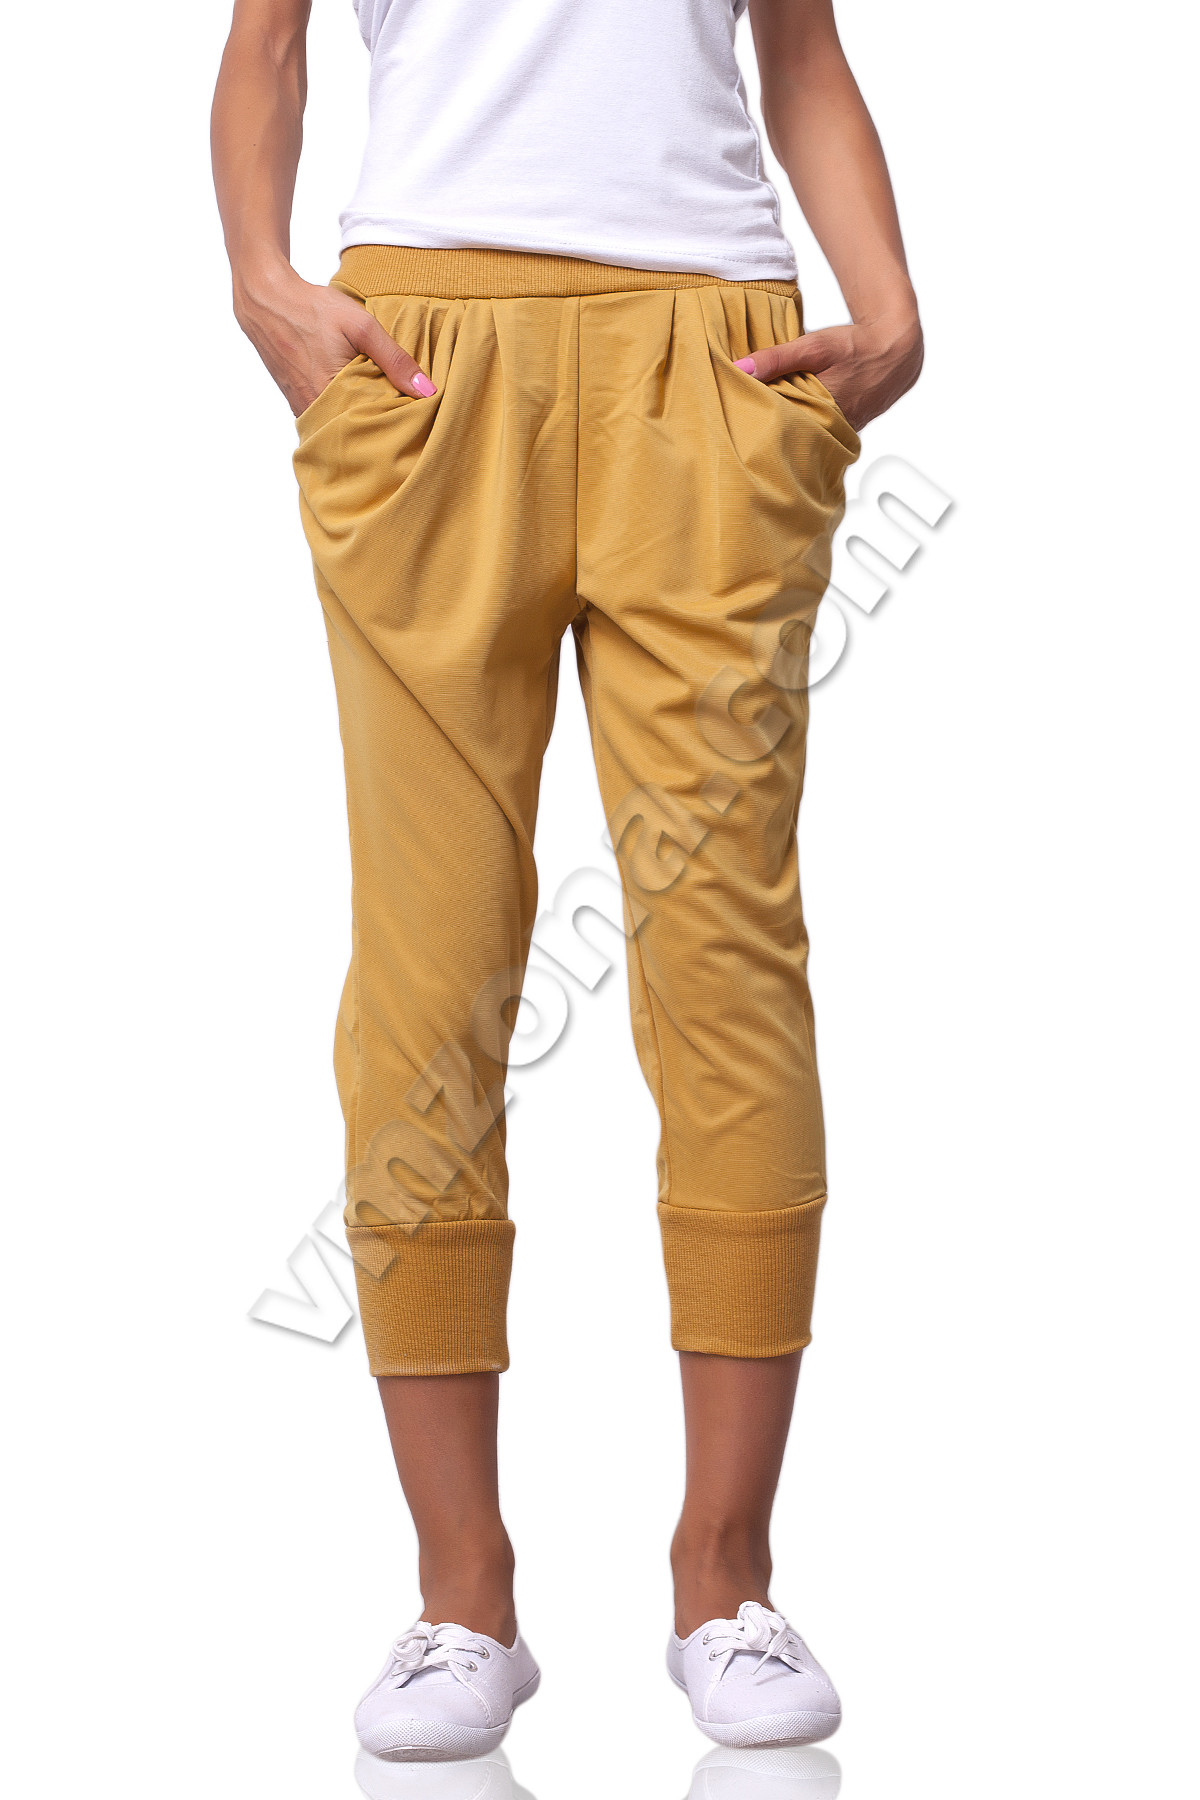 Ladies-trousers-7-8-tucks-with-pockets-nk18495